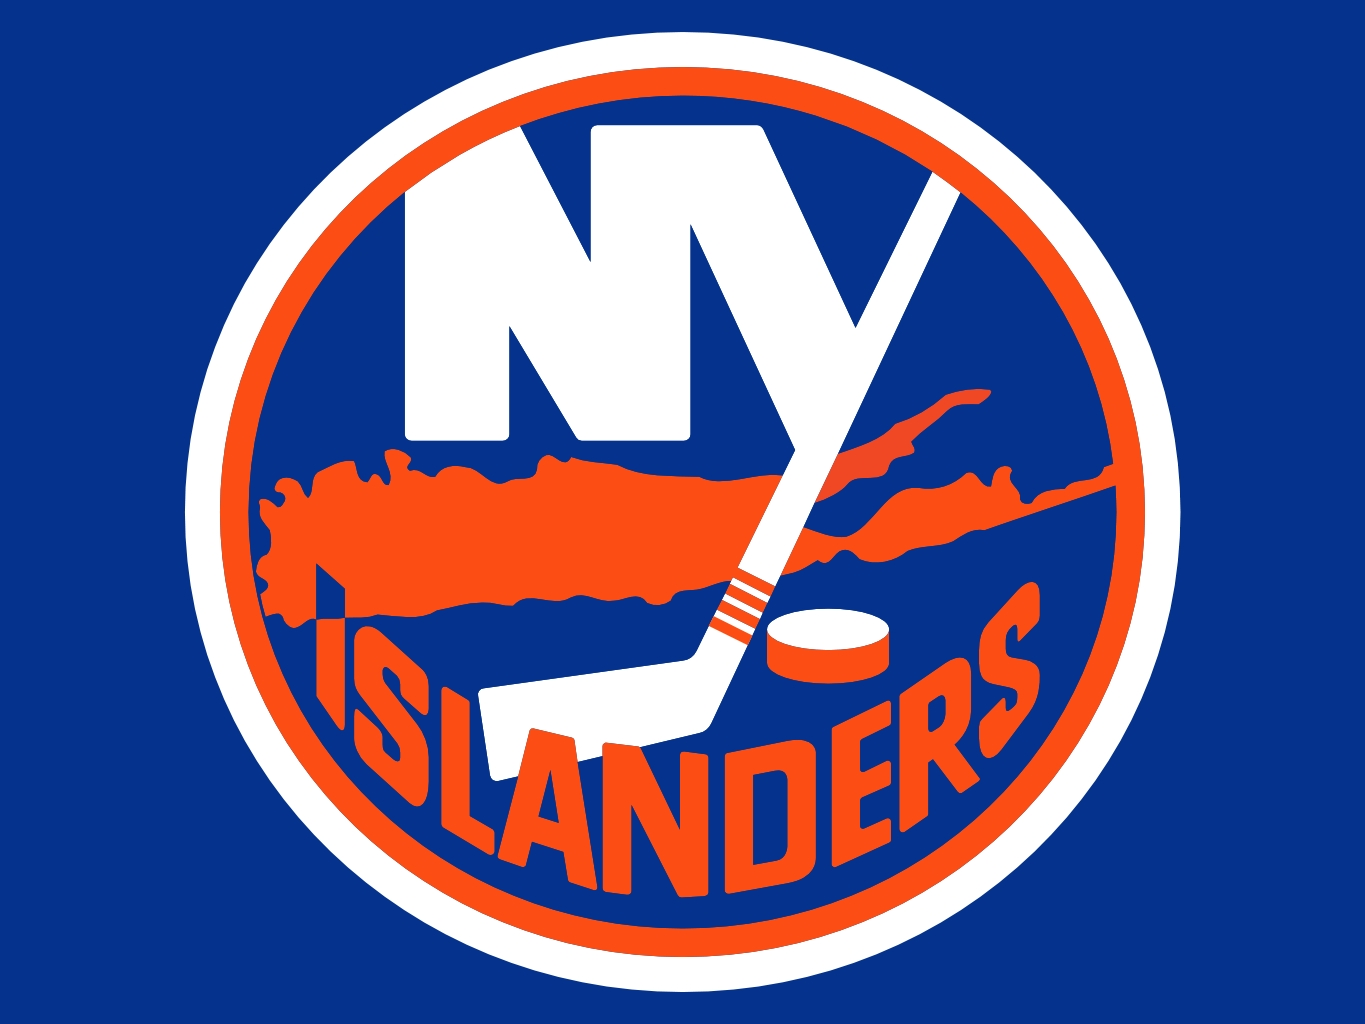 New york islanders logo clipart graphic transparent 17 Best images about Go Islanders! on Pinterest | Calder memorial ... graphic transparent